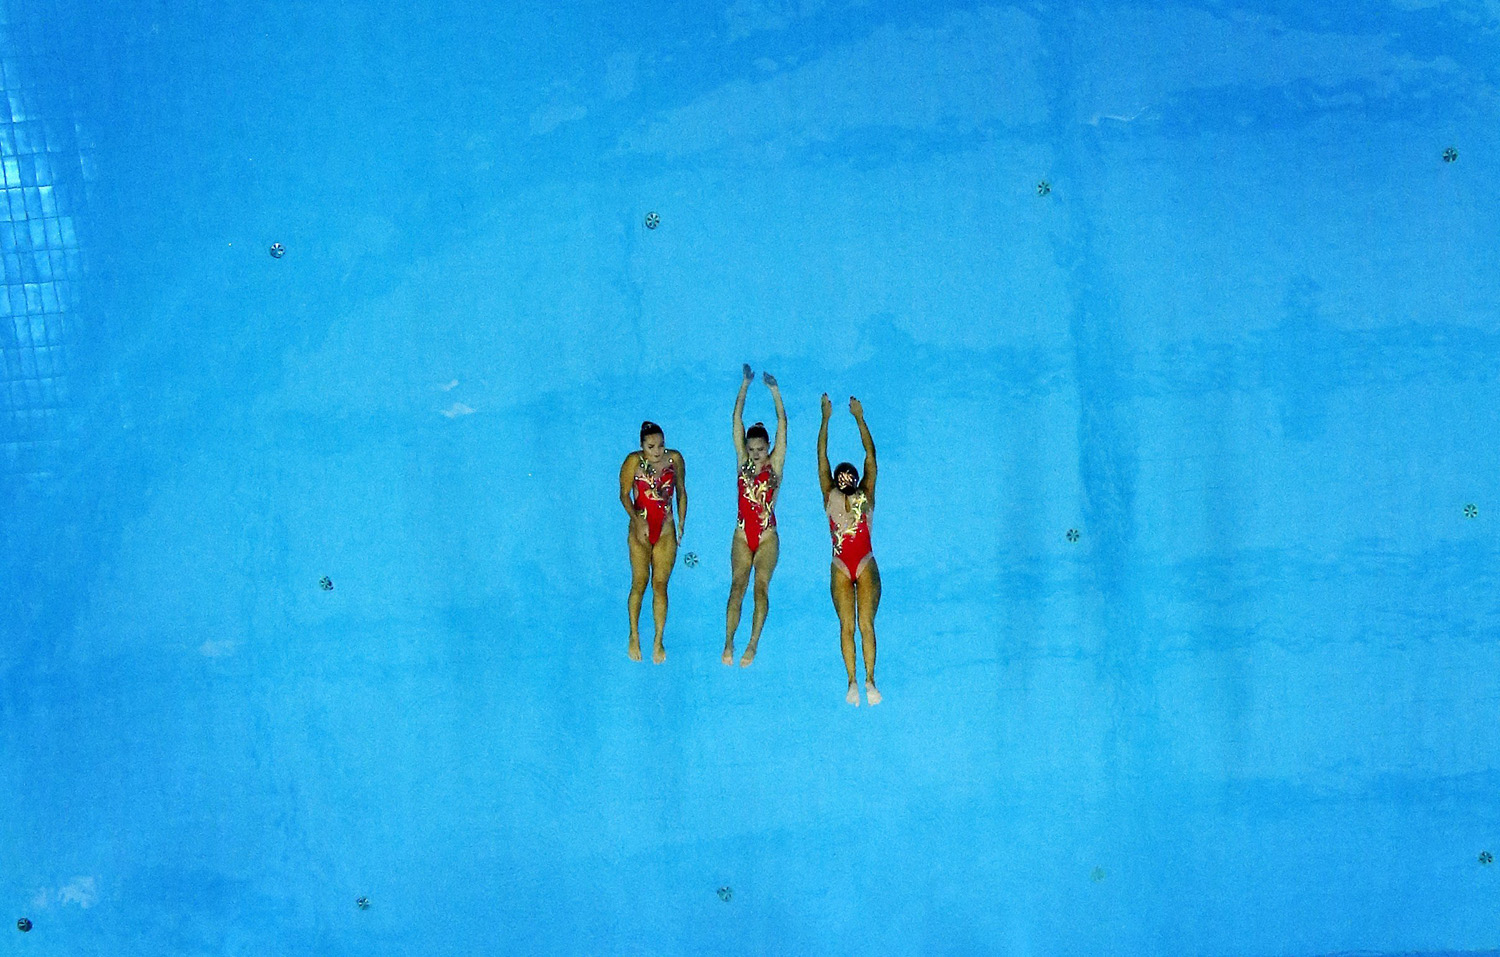 Three members of the bronze medal winning Kazakhstan team perform during their Synchronised Swimming Free Combination routine at the Munhak Park Tae-hwan Aquatics Center during the 17th Asian Games in Incheon, South Korea on Sept. 23, 2014.